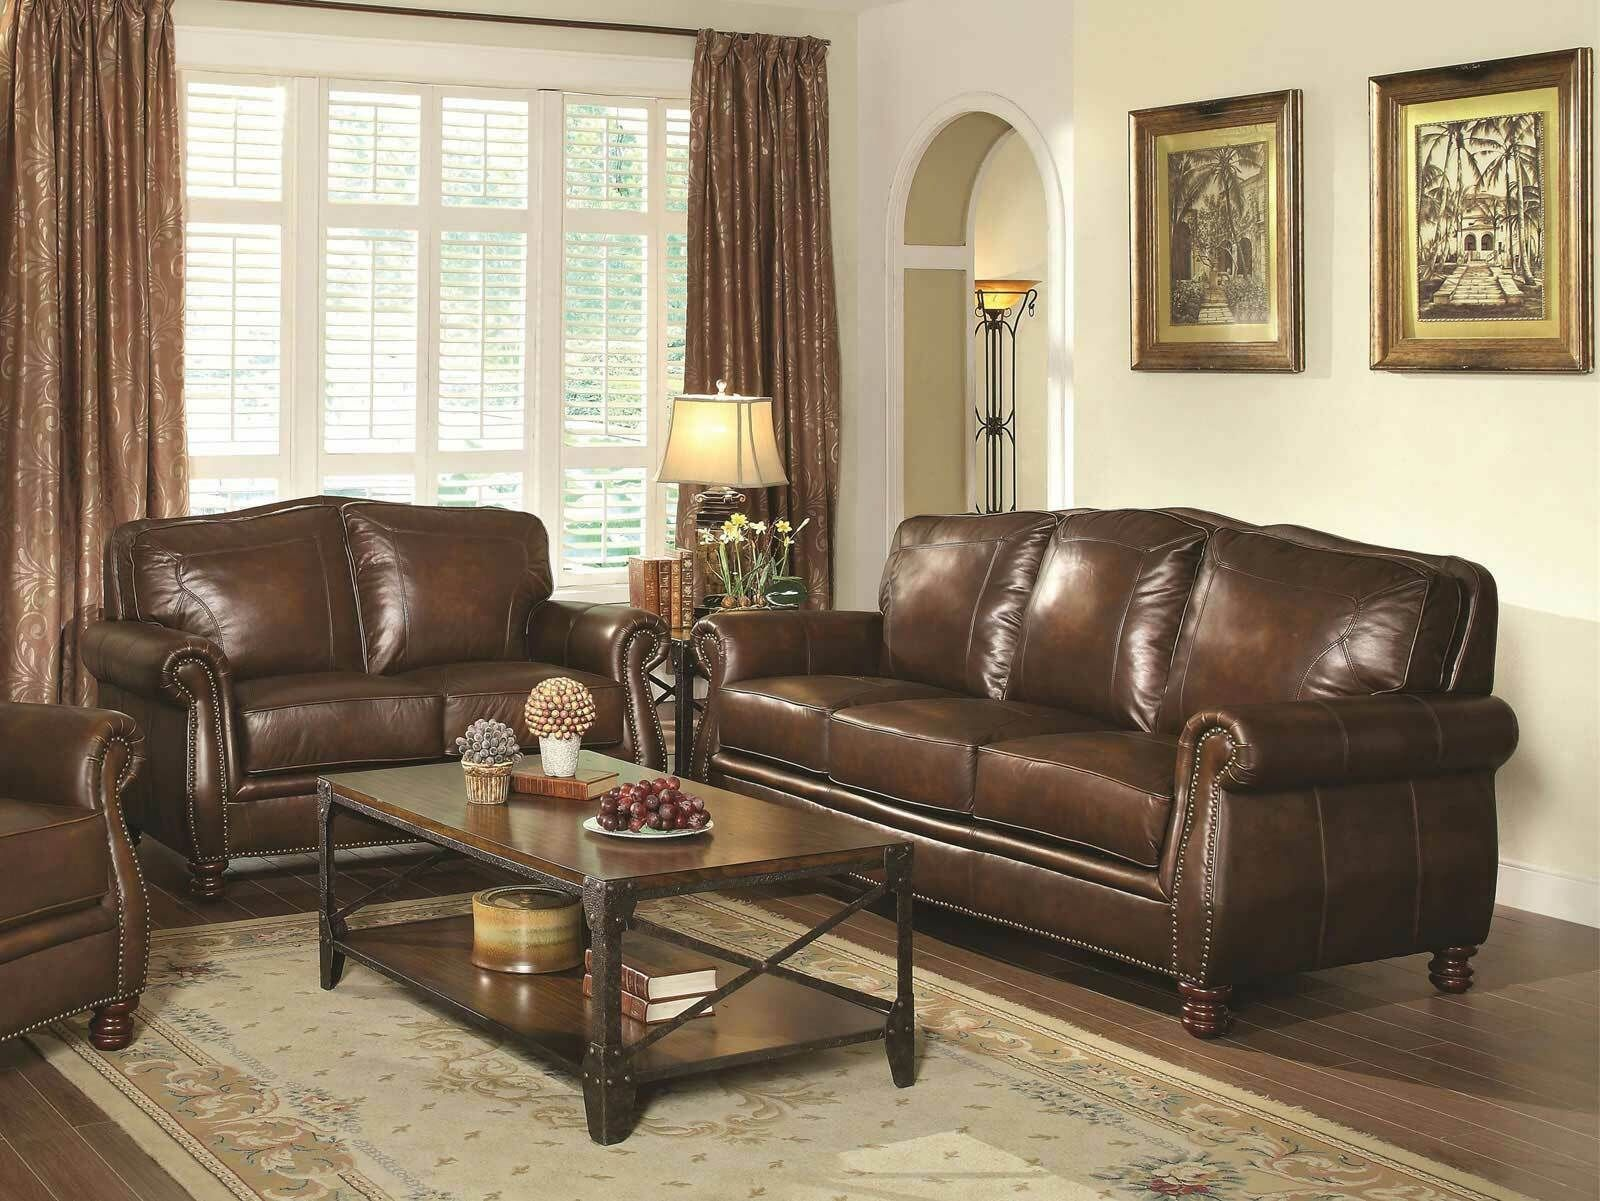 Traditional Living Room Furniture Brown Leather Sofa Couch